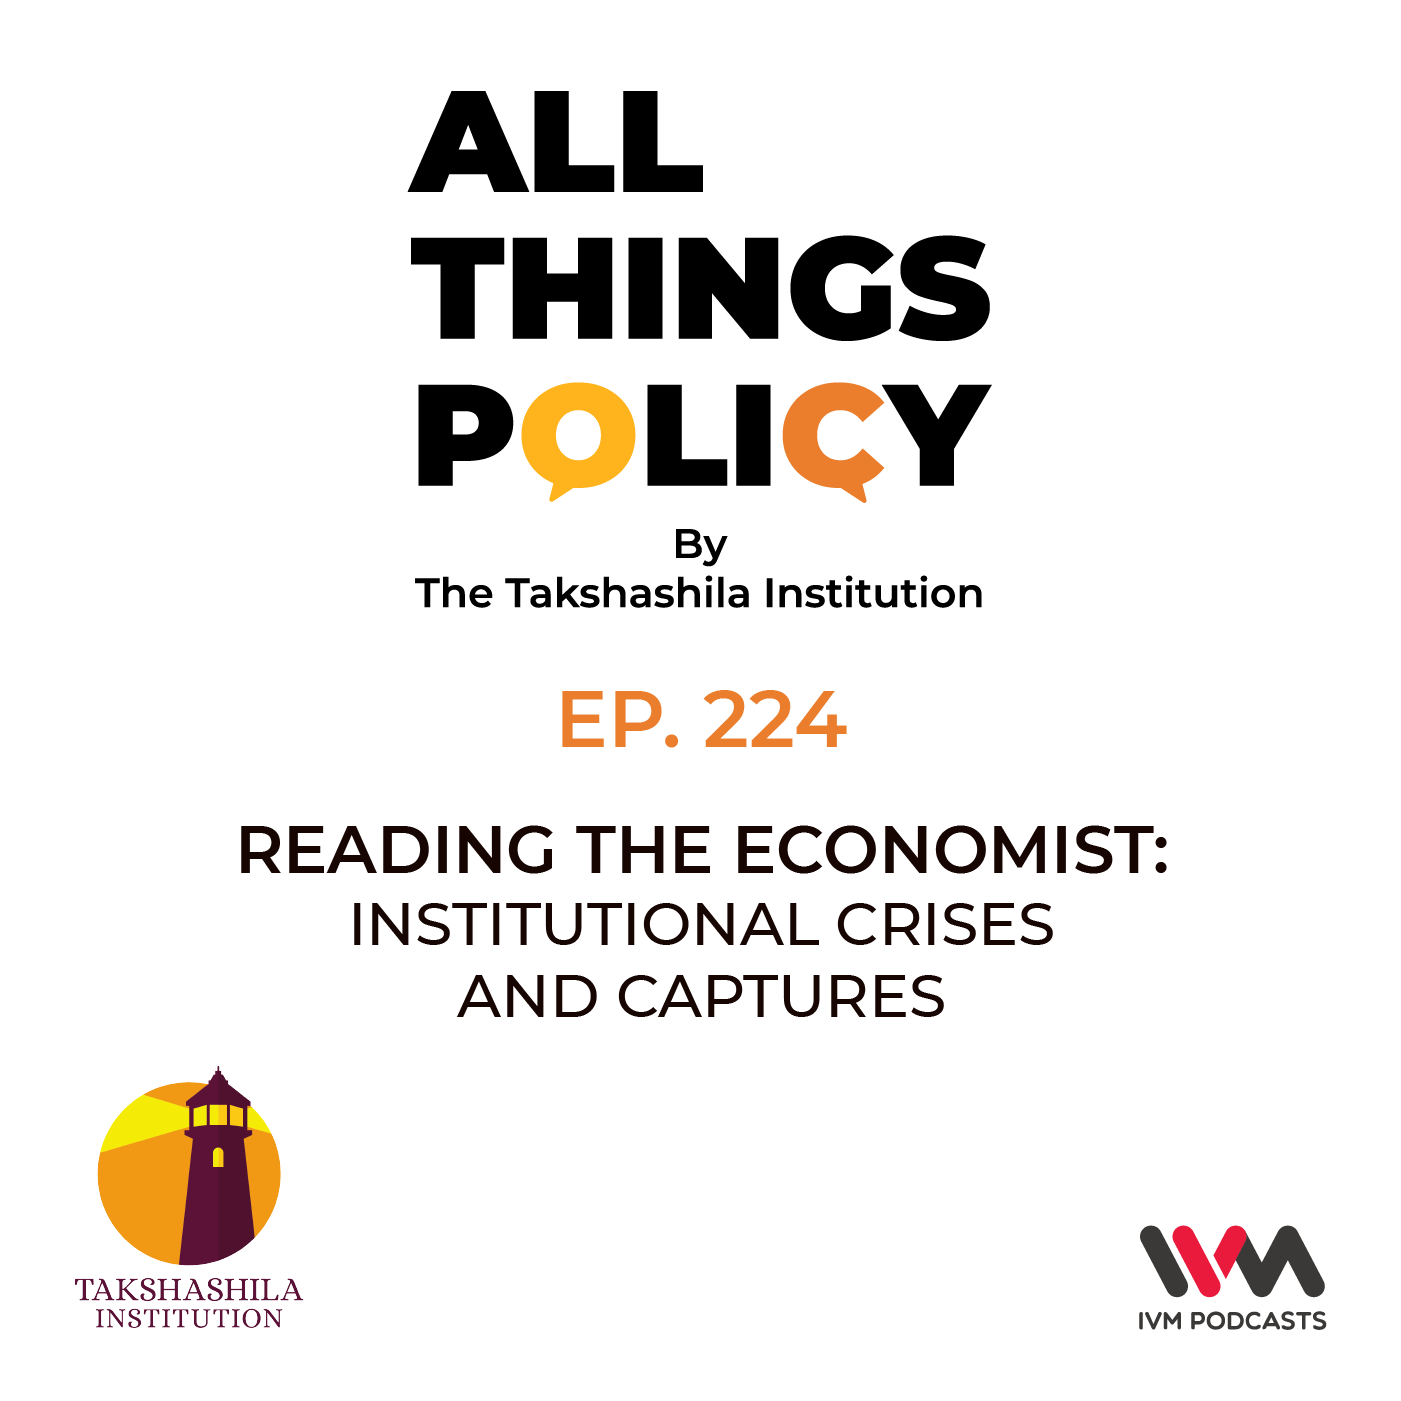 Ep. 224: Reading the Economist: Institutional Crises and Captures